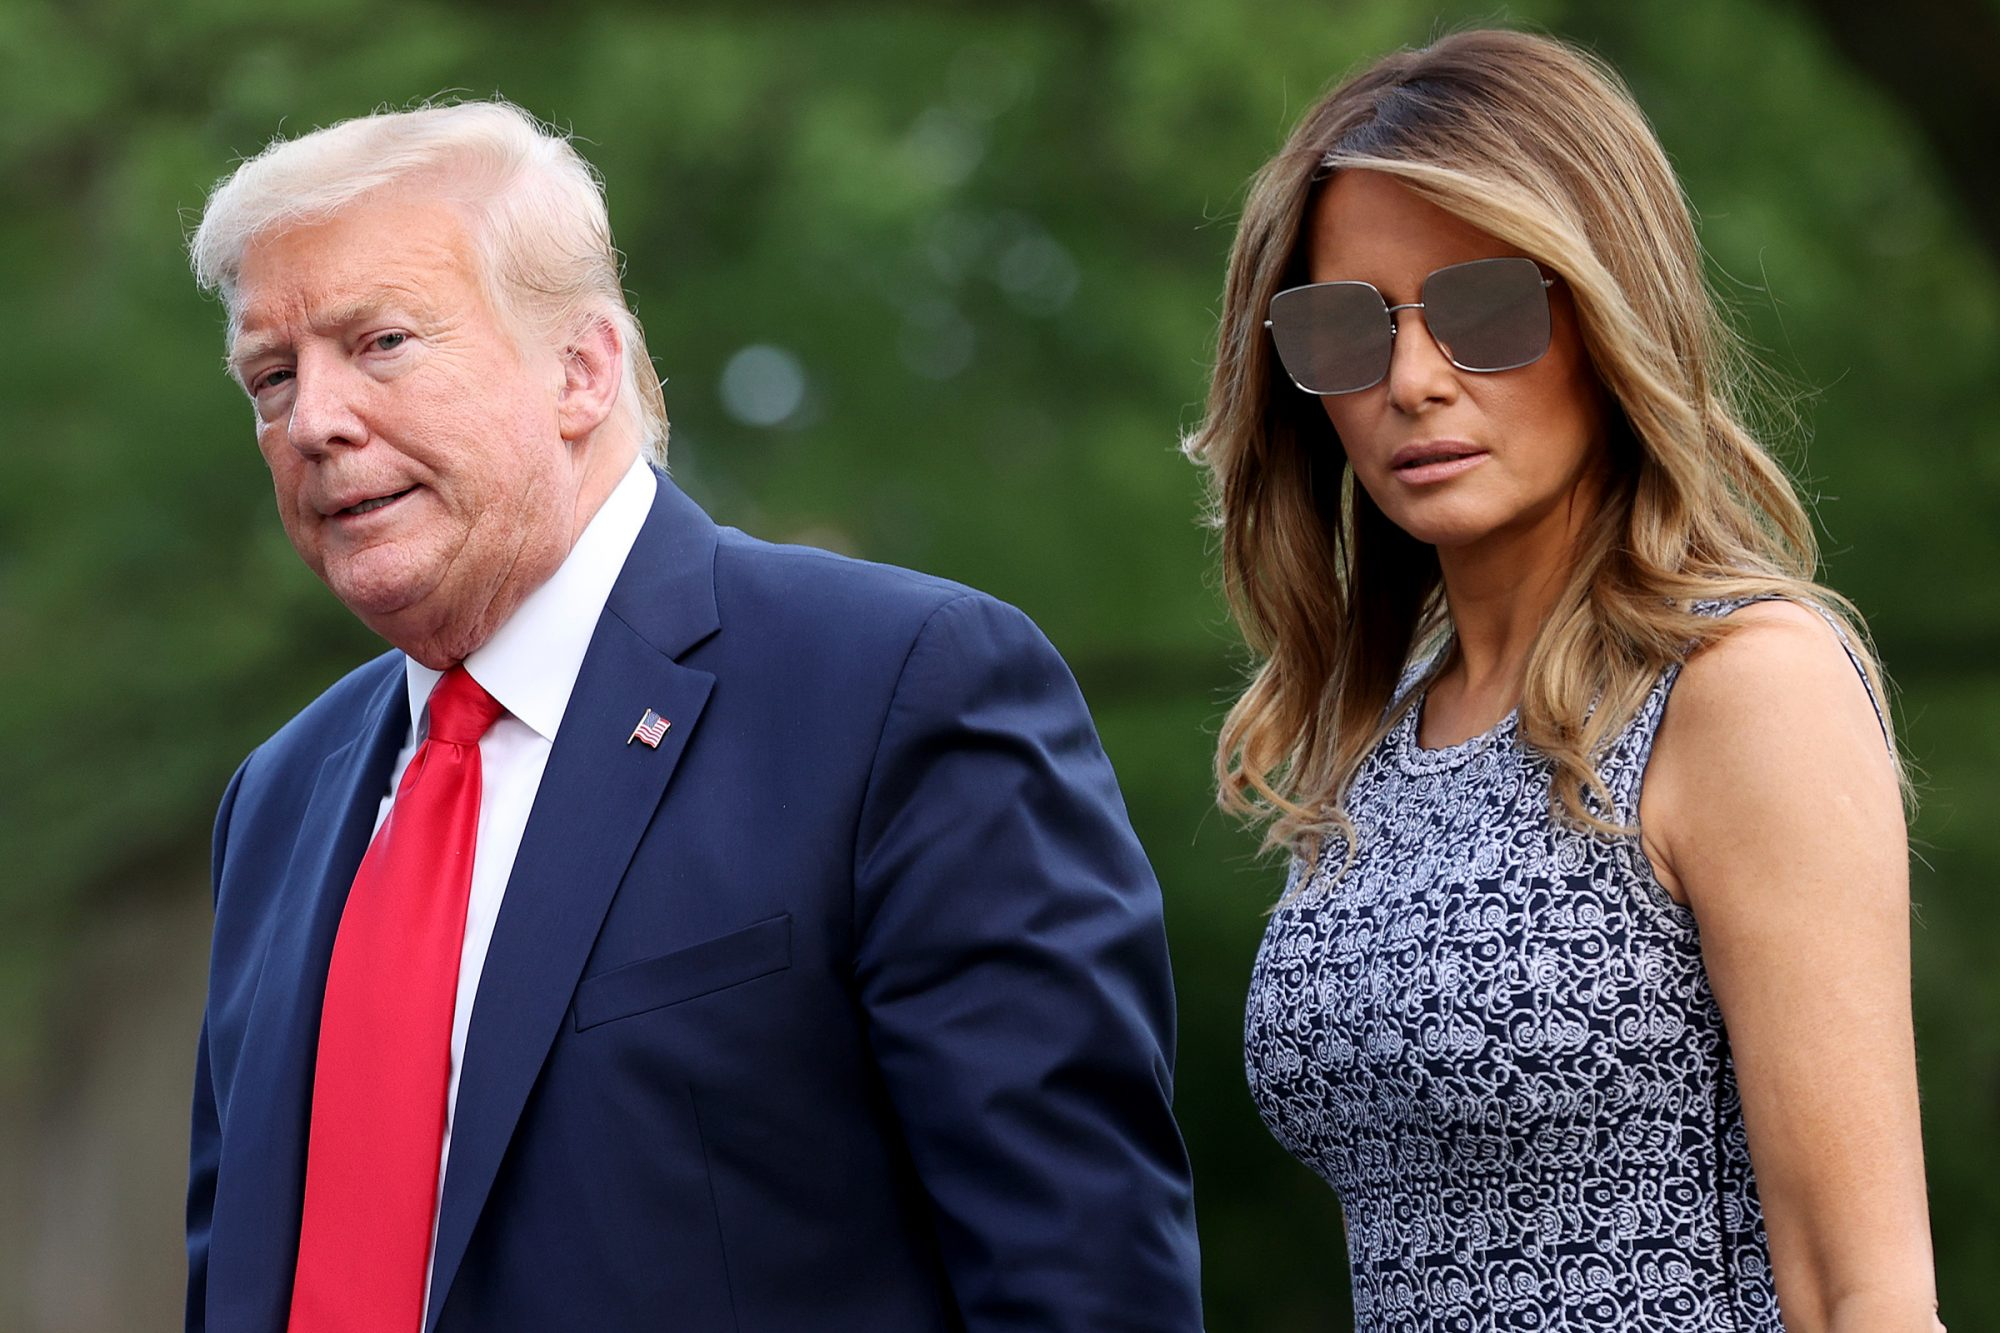 U.S. President Donald Trump and first lady Melania Trump return to the White House on May 27, 2020 in Washington, DC